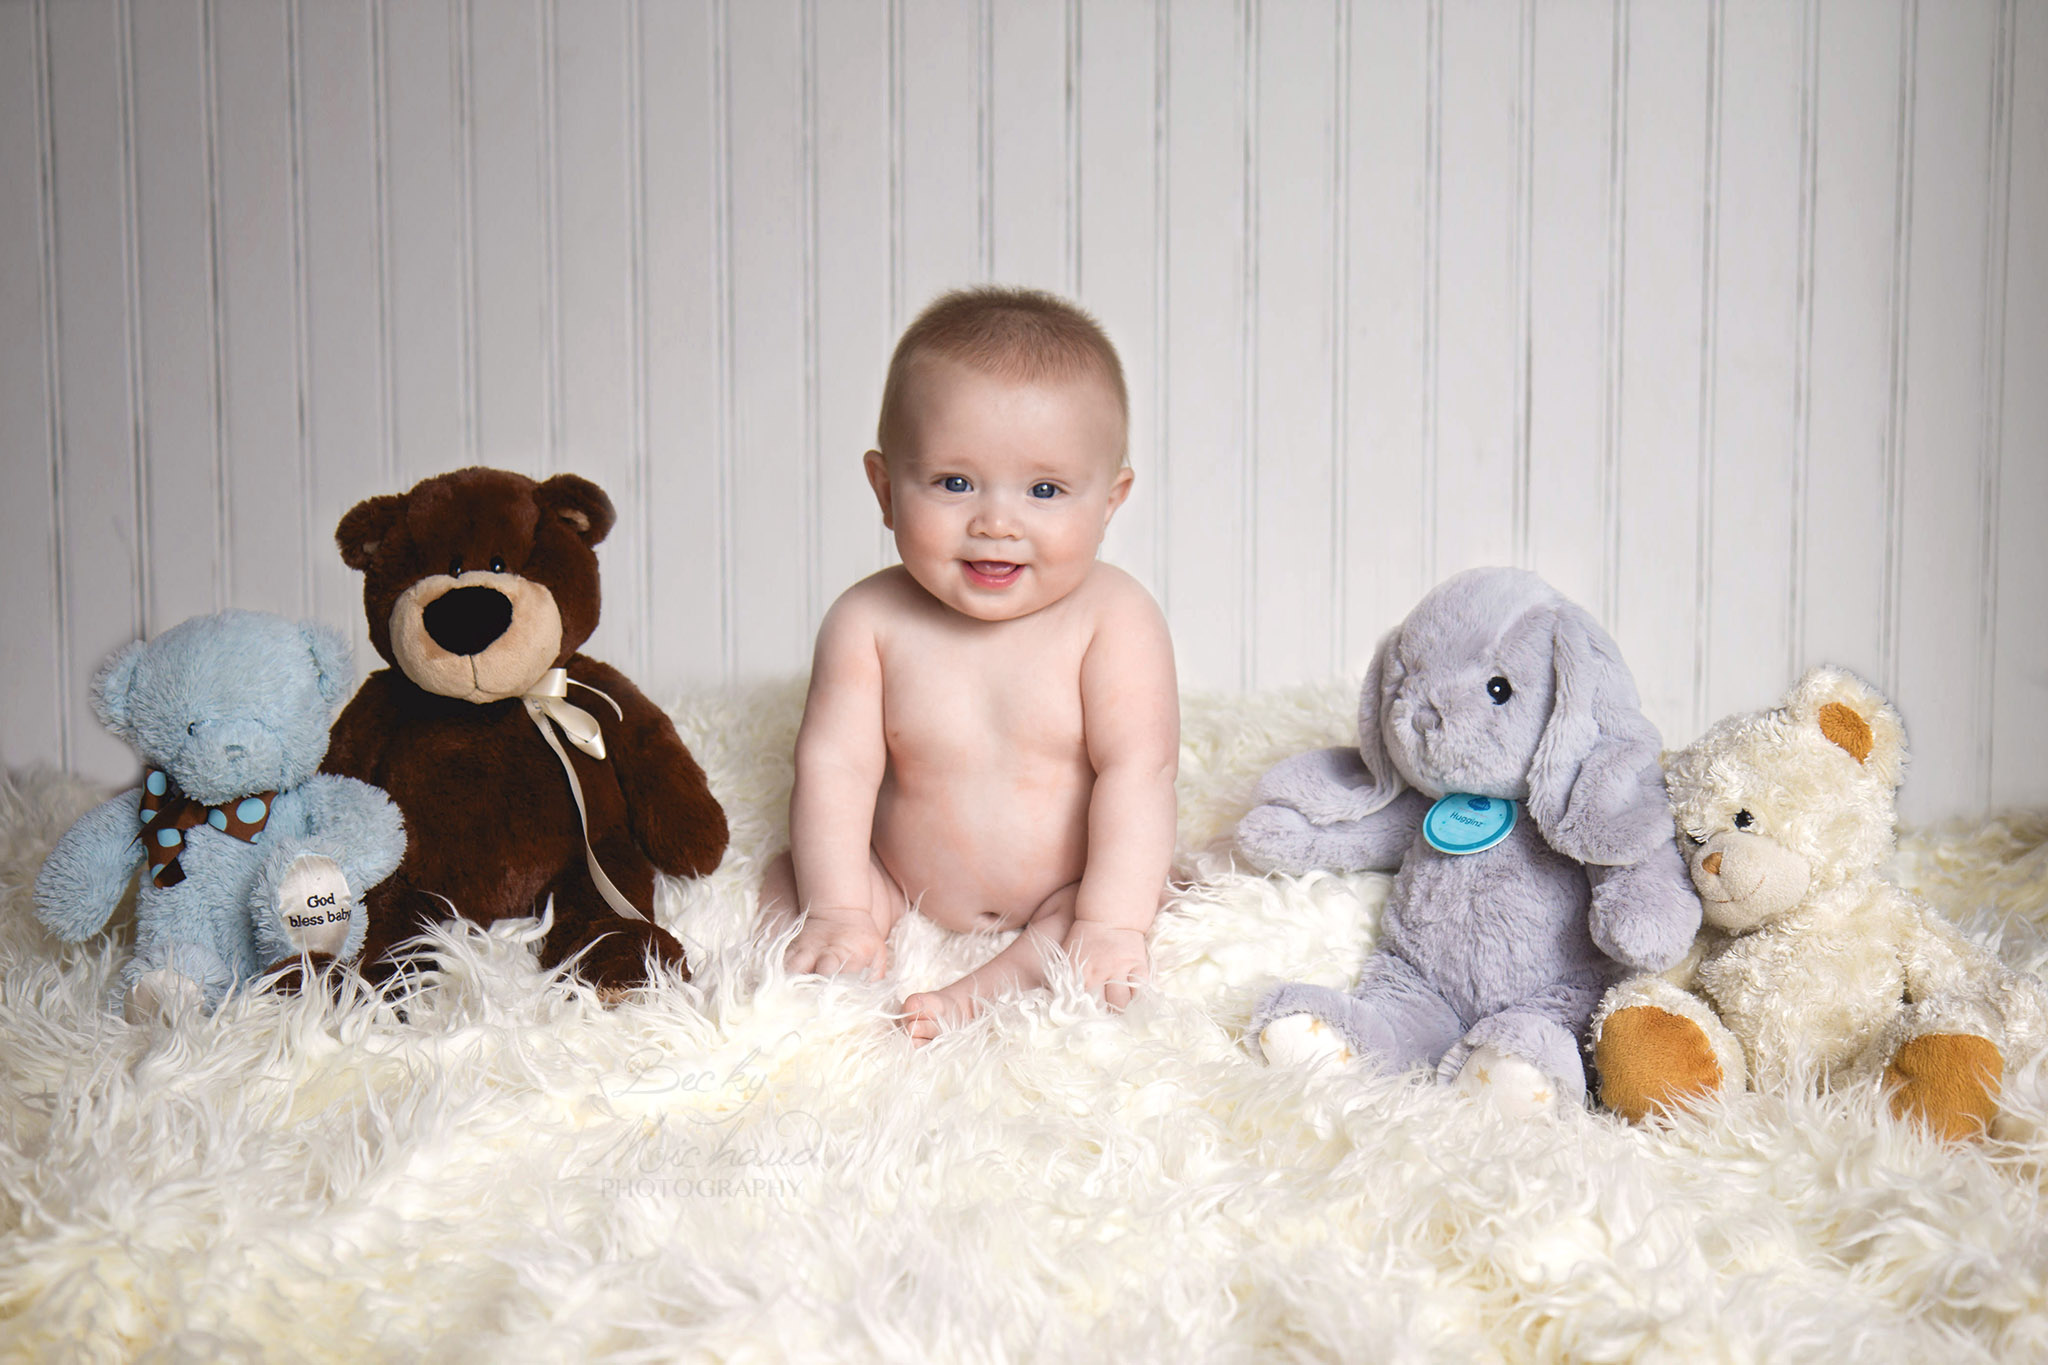 Infant with stuffed animals